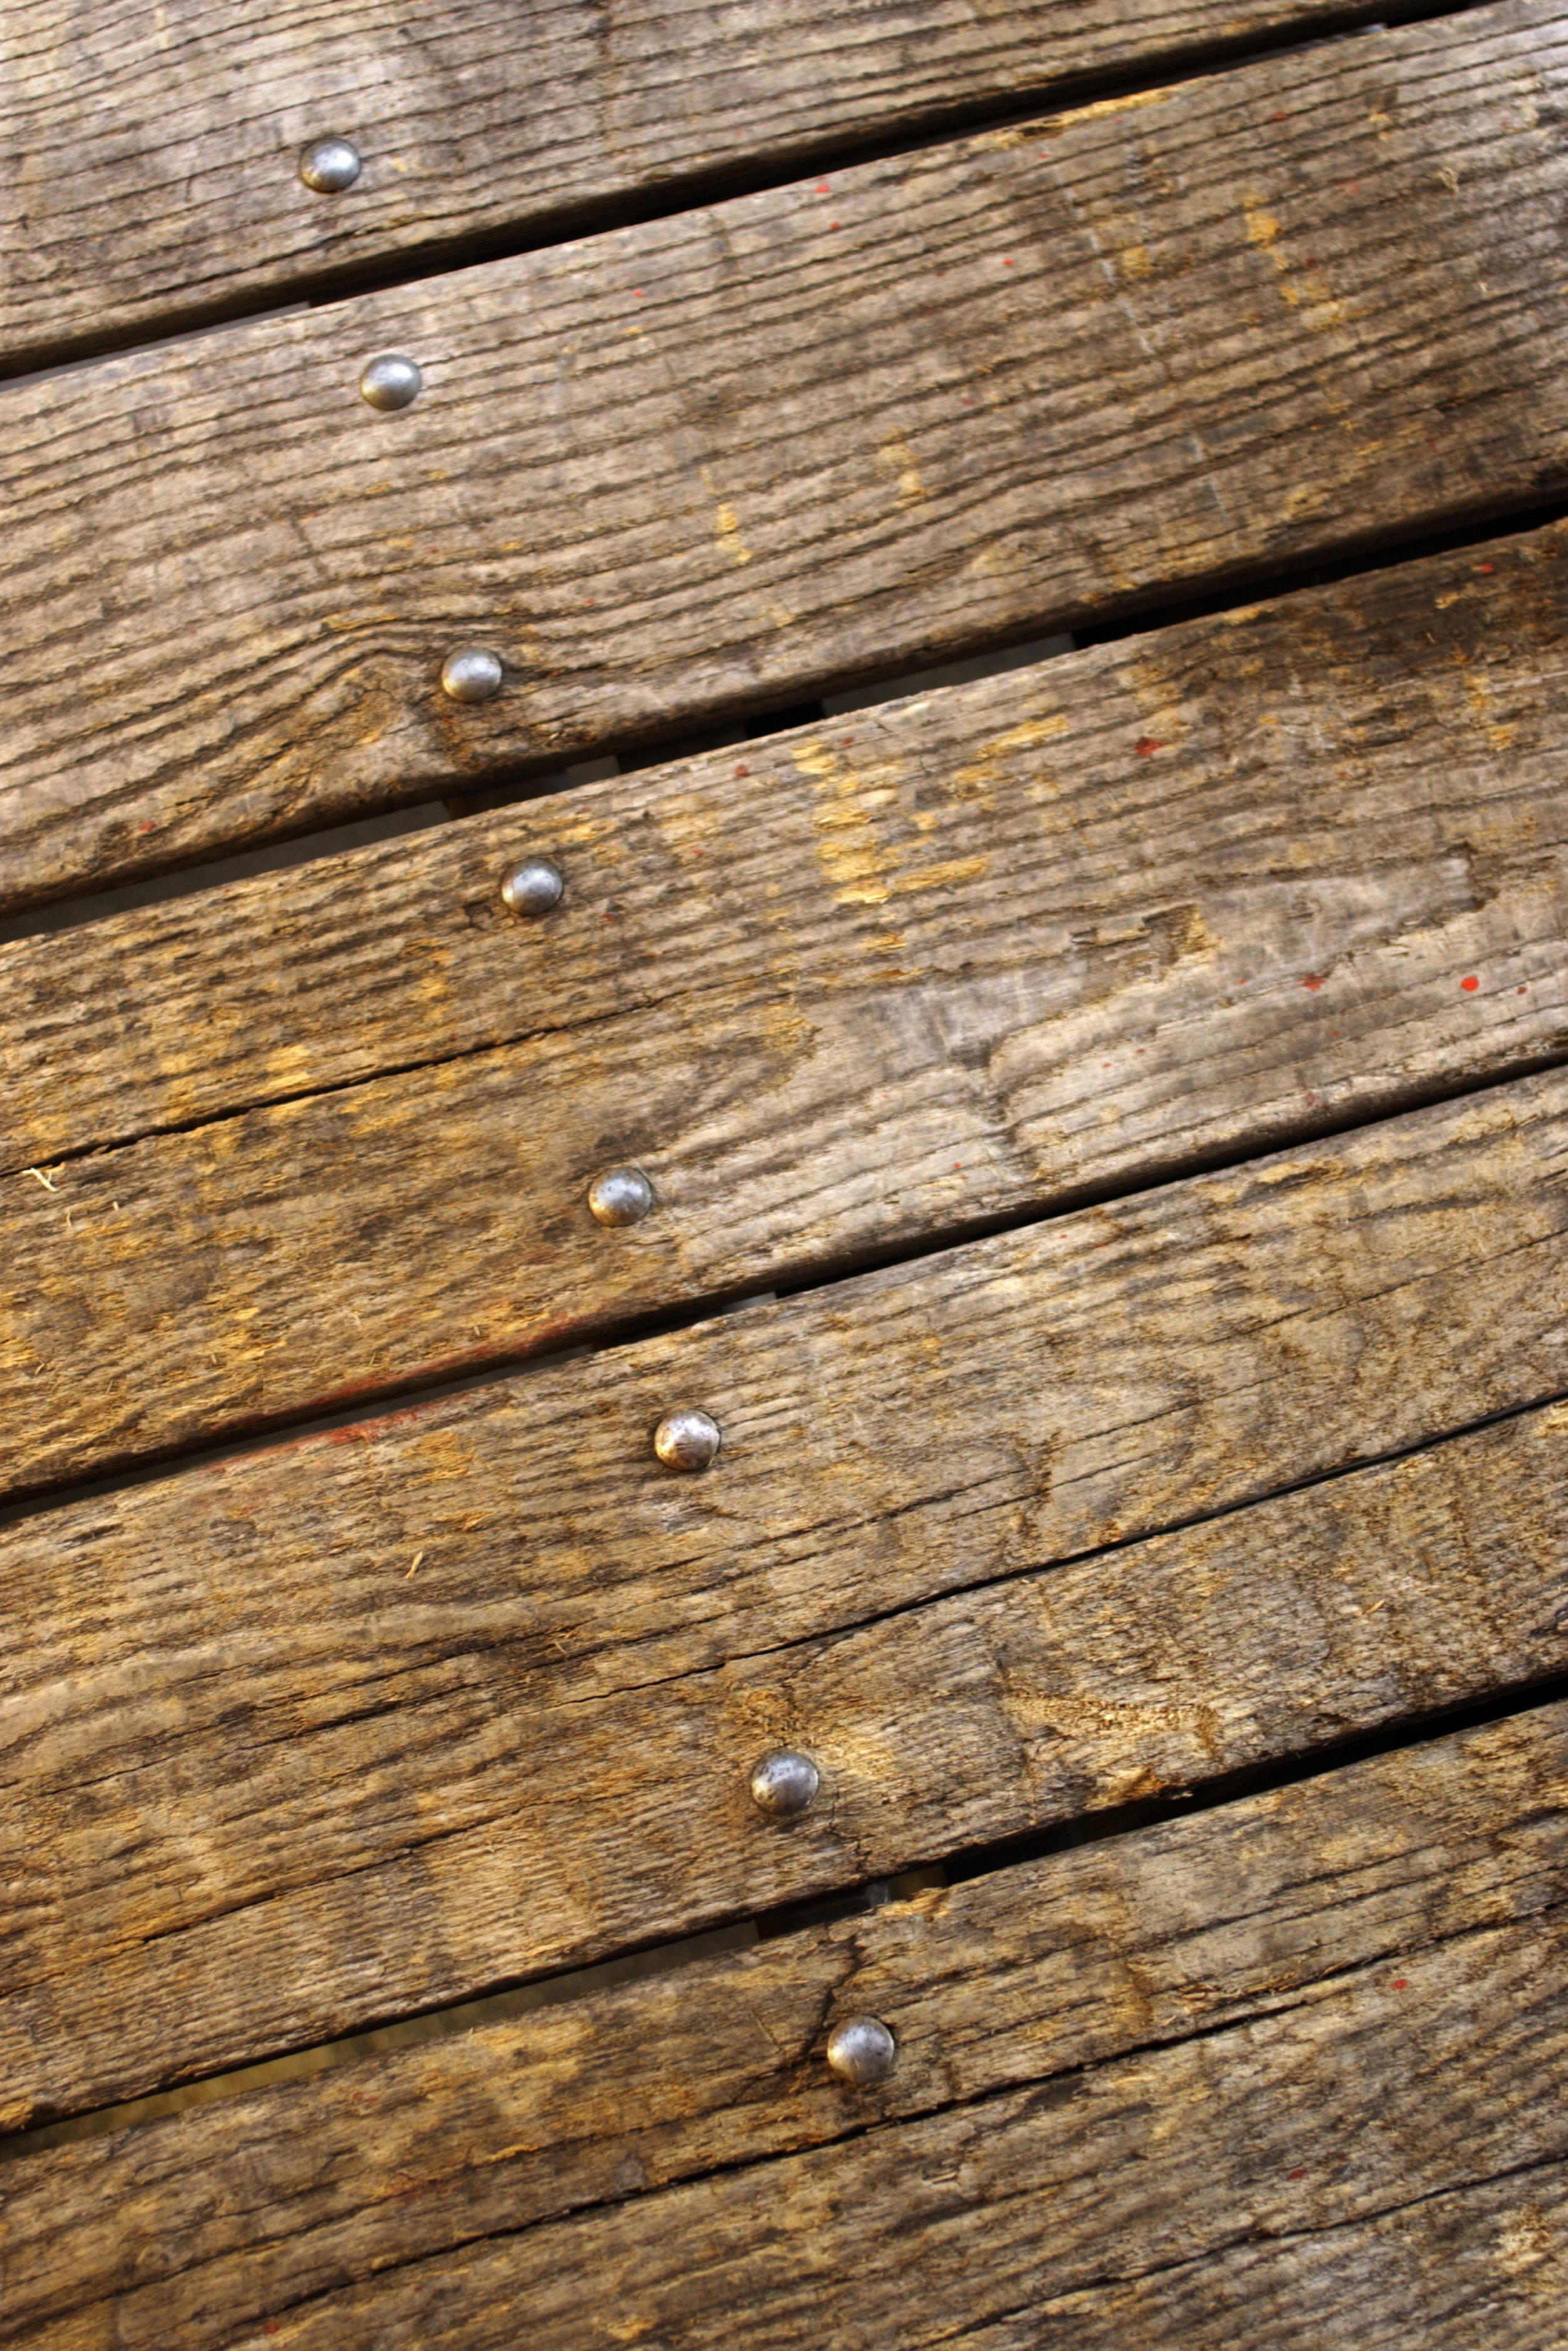 How To Tell If A Creaking And Lumpy Floor Is Rotting | EHow